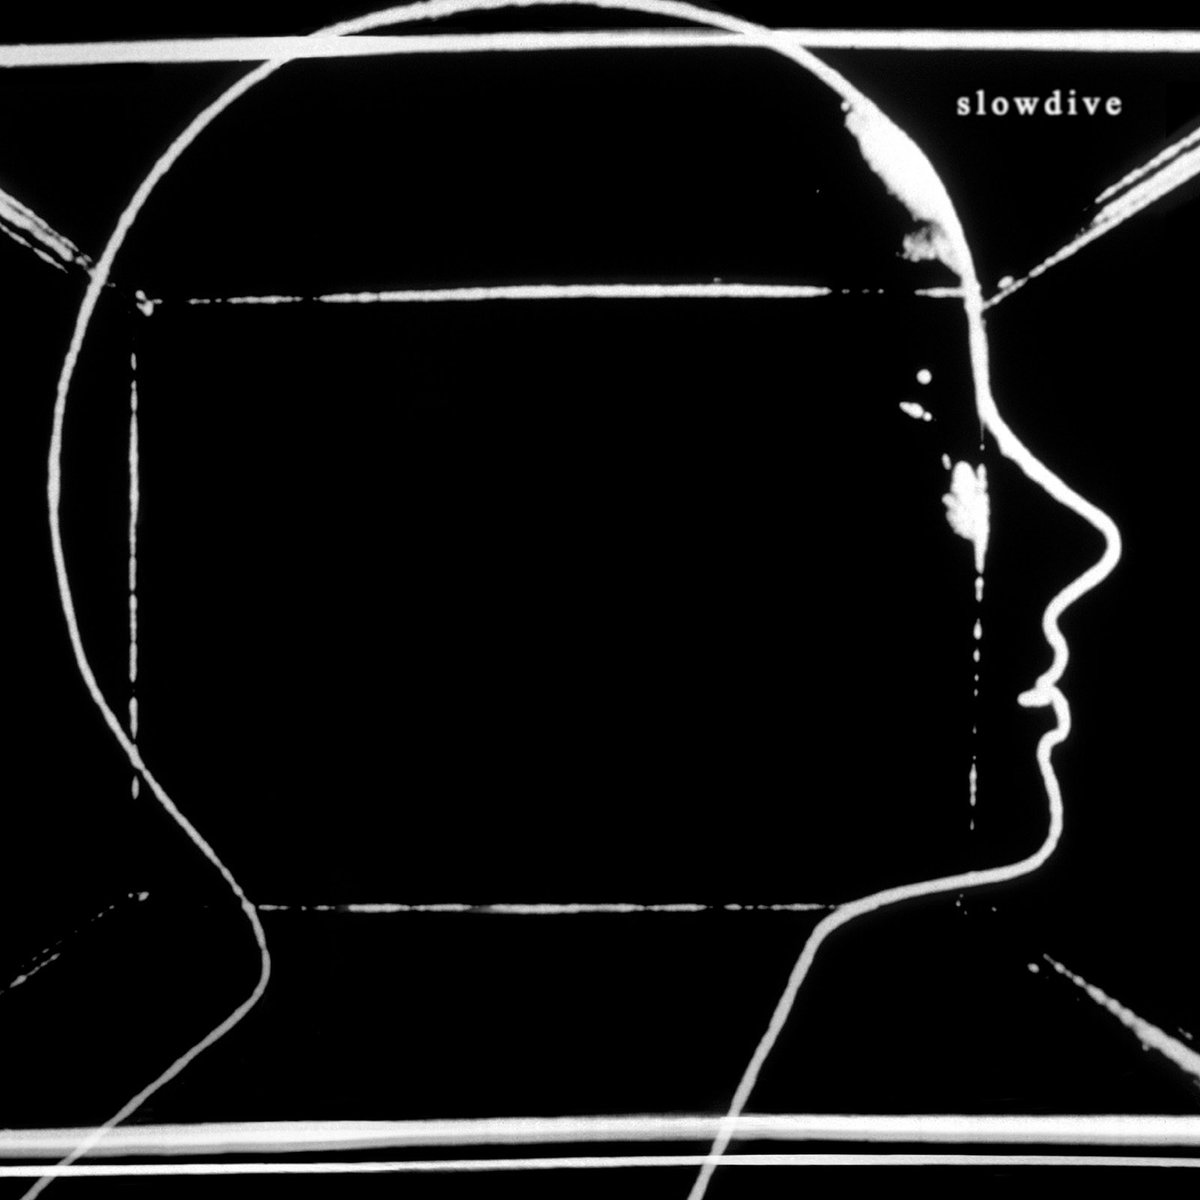 slowdive Top 50 Albums of 2017